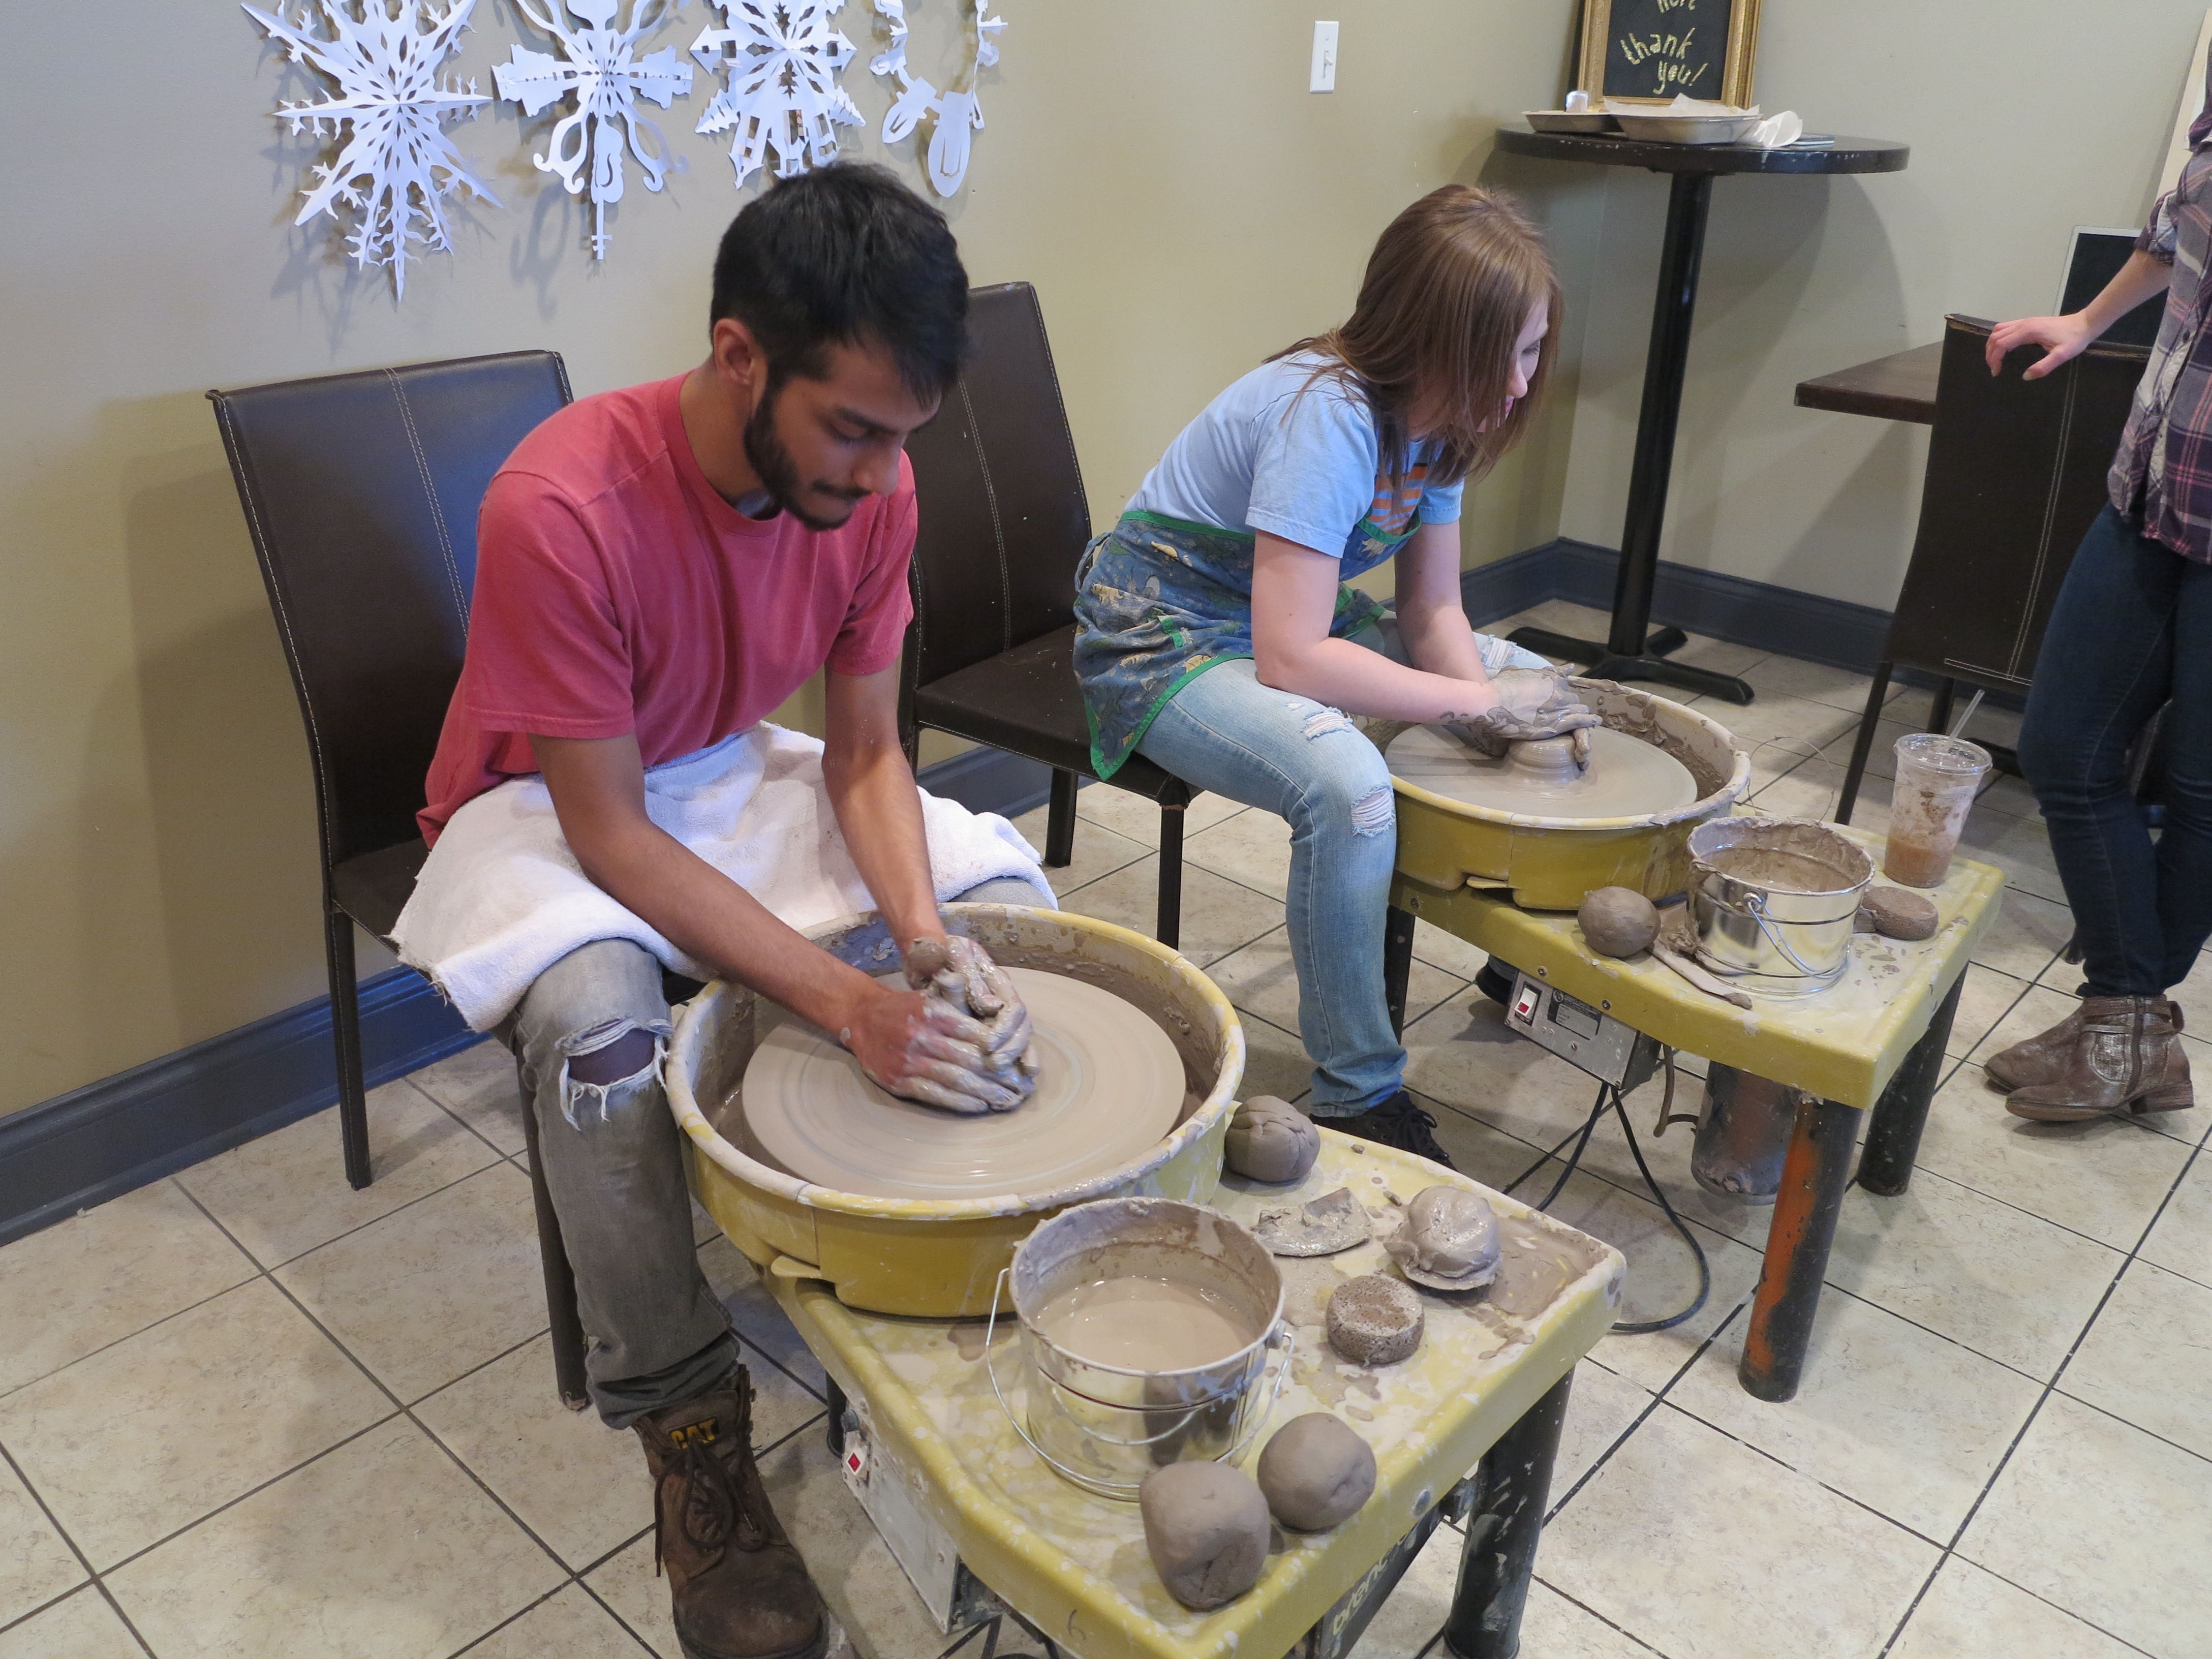 Community Art Studio Searches for New Space, Seeks Support